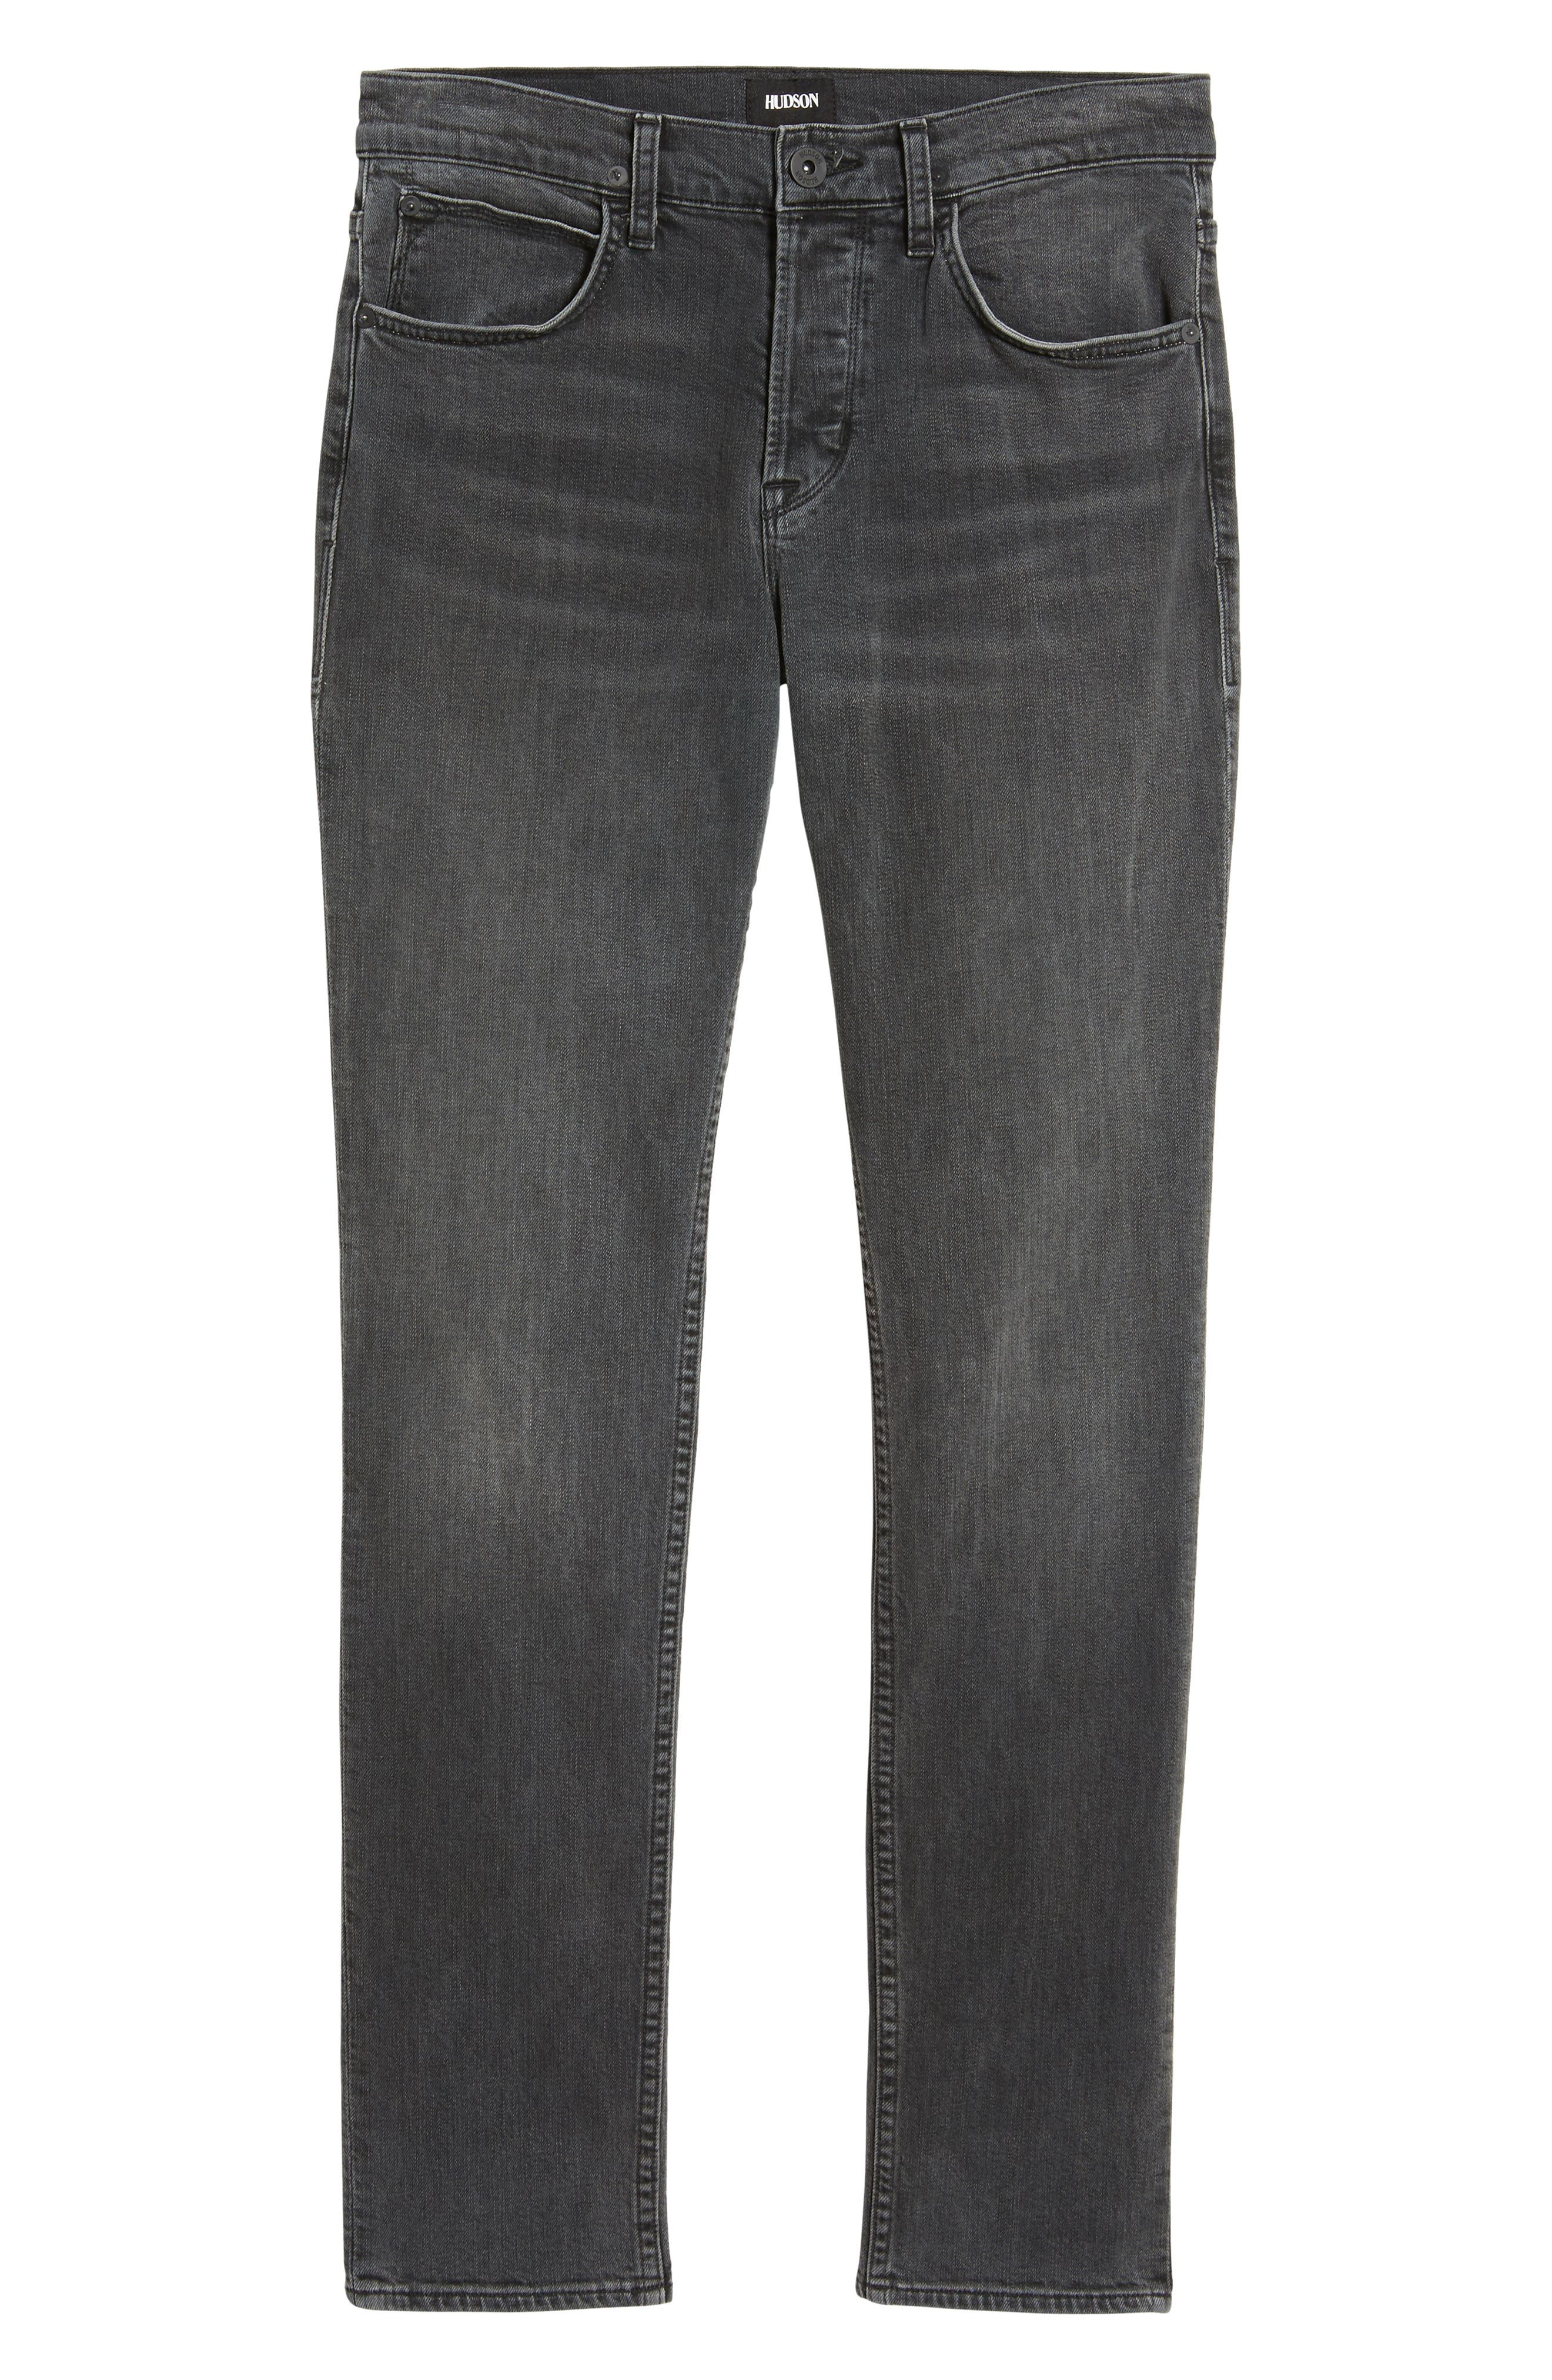 Axl Skinny Fit Jeans,                             Alternate thumbnail 6, color,                             Oxidize